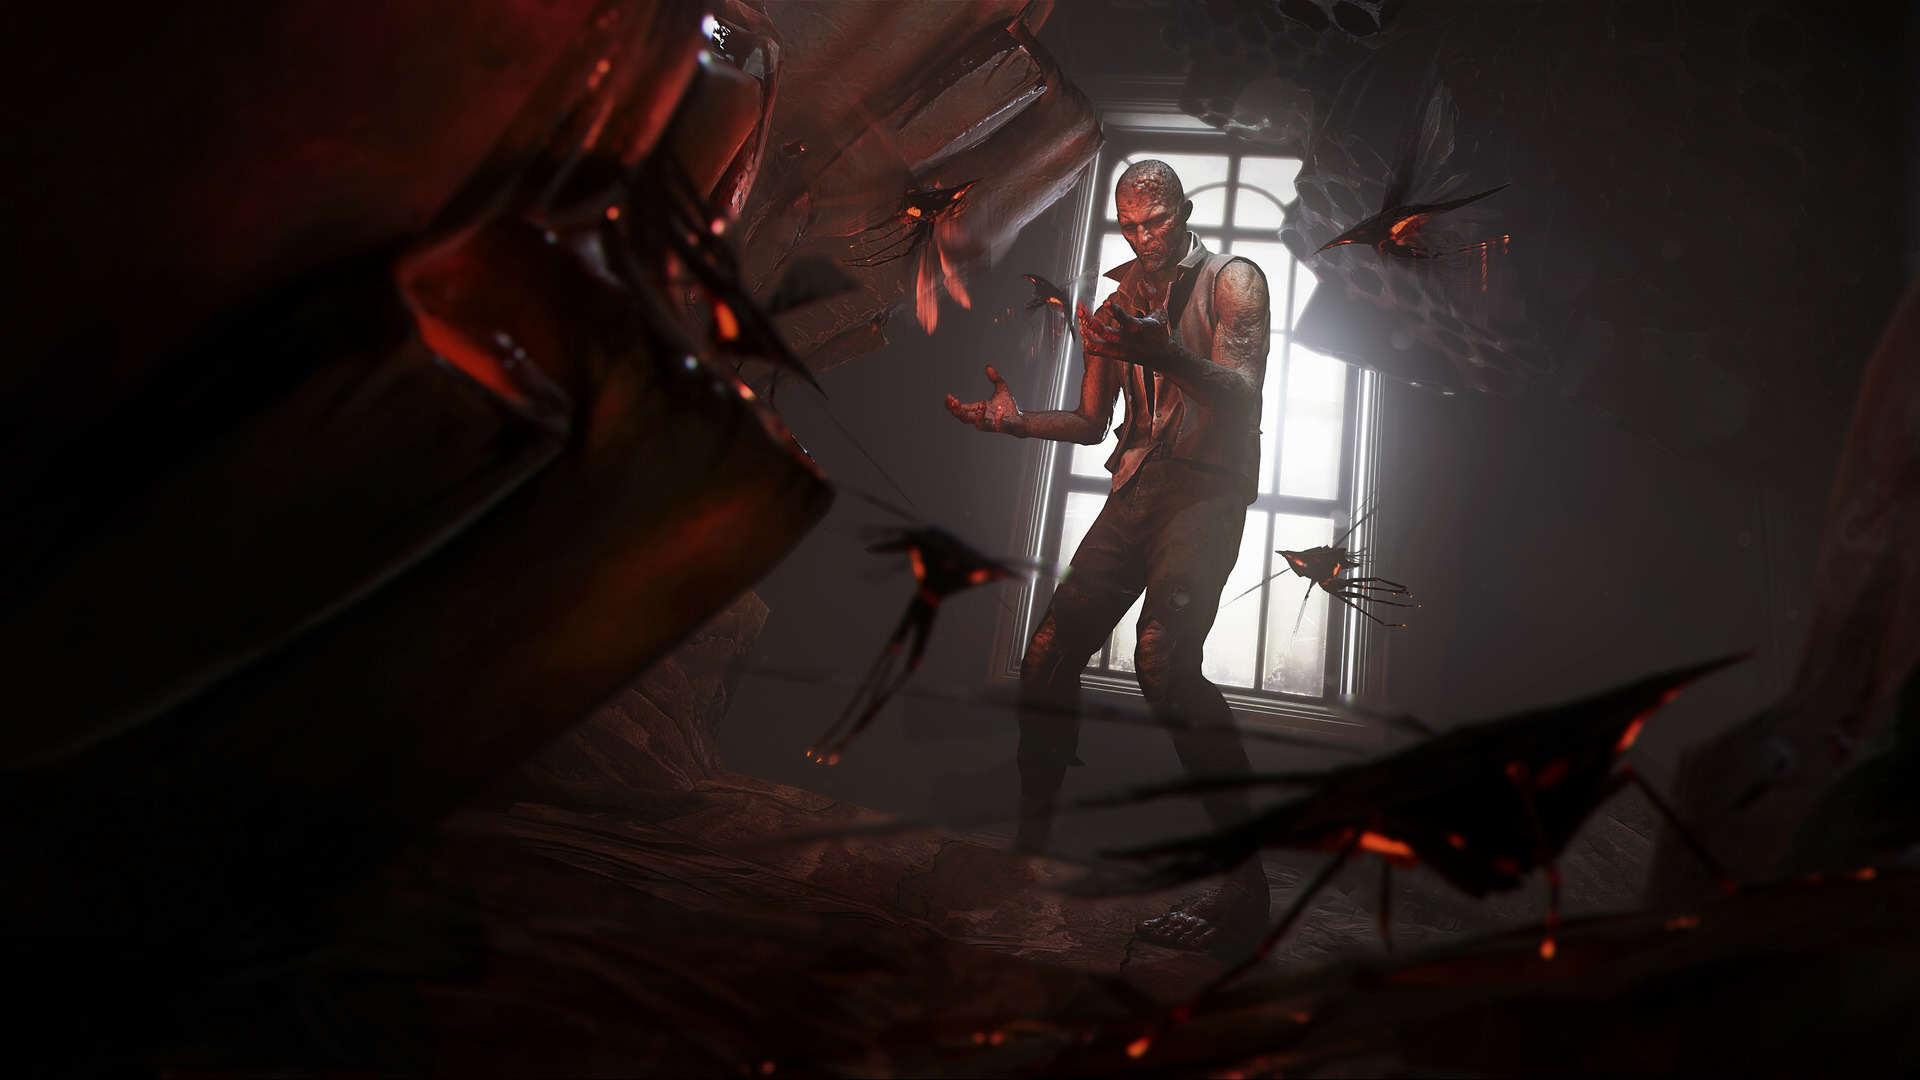 558jUzQ Check Out These Gorgeous New Dishonored 2 Screens